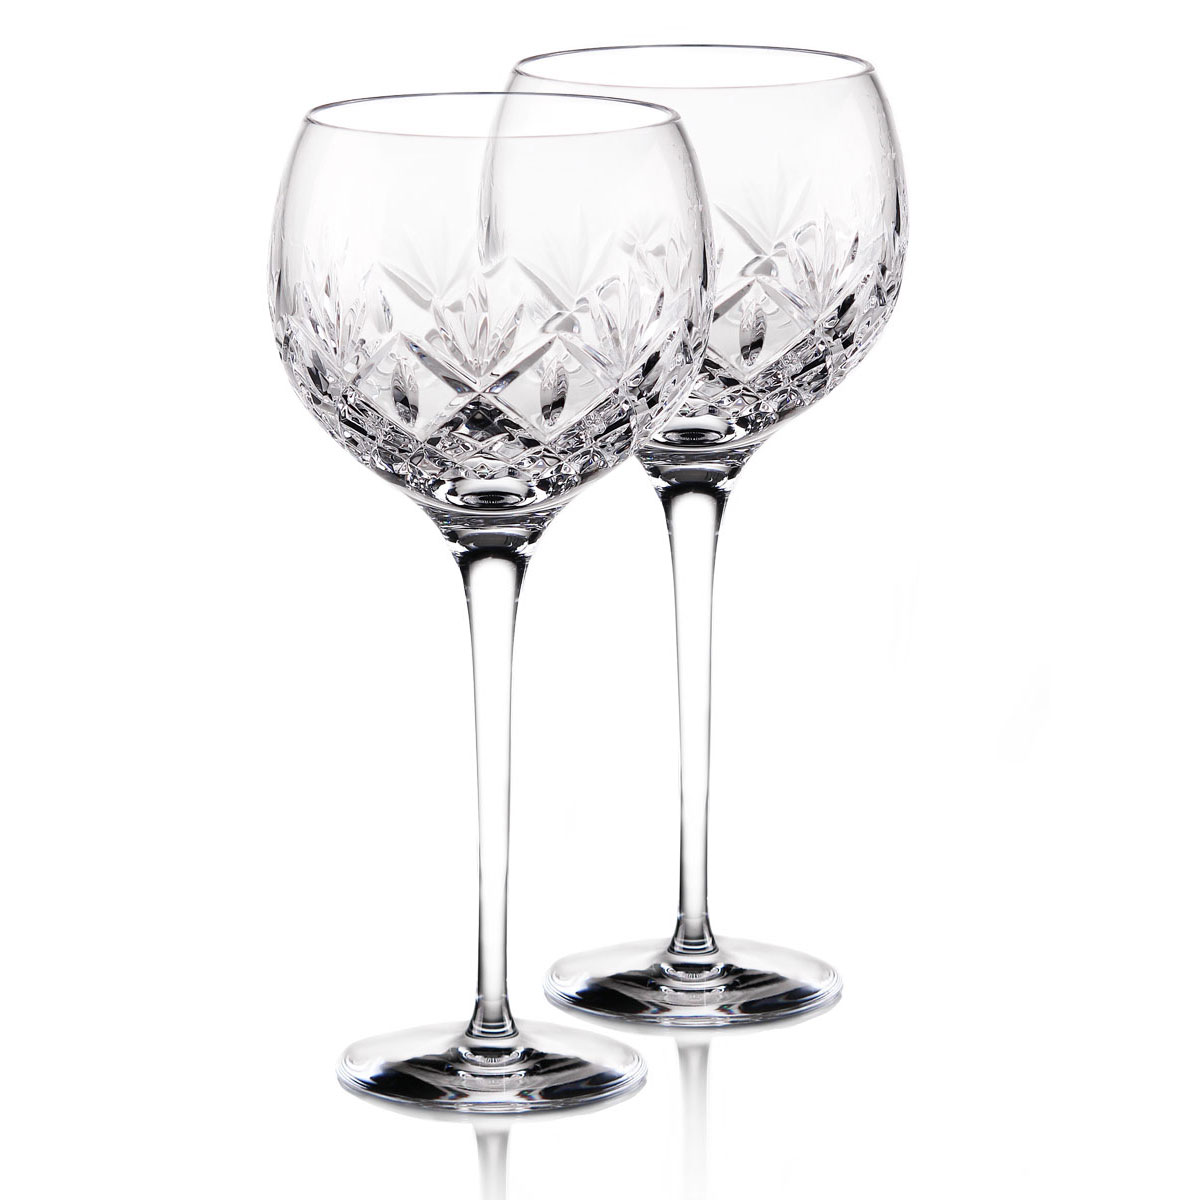 Waterford Crystal Huntley Balloon Wine Glasses, Pair